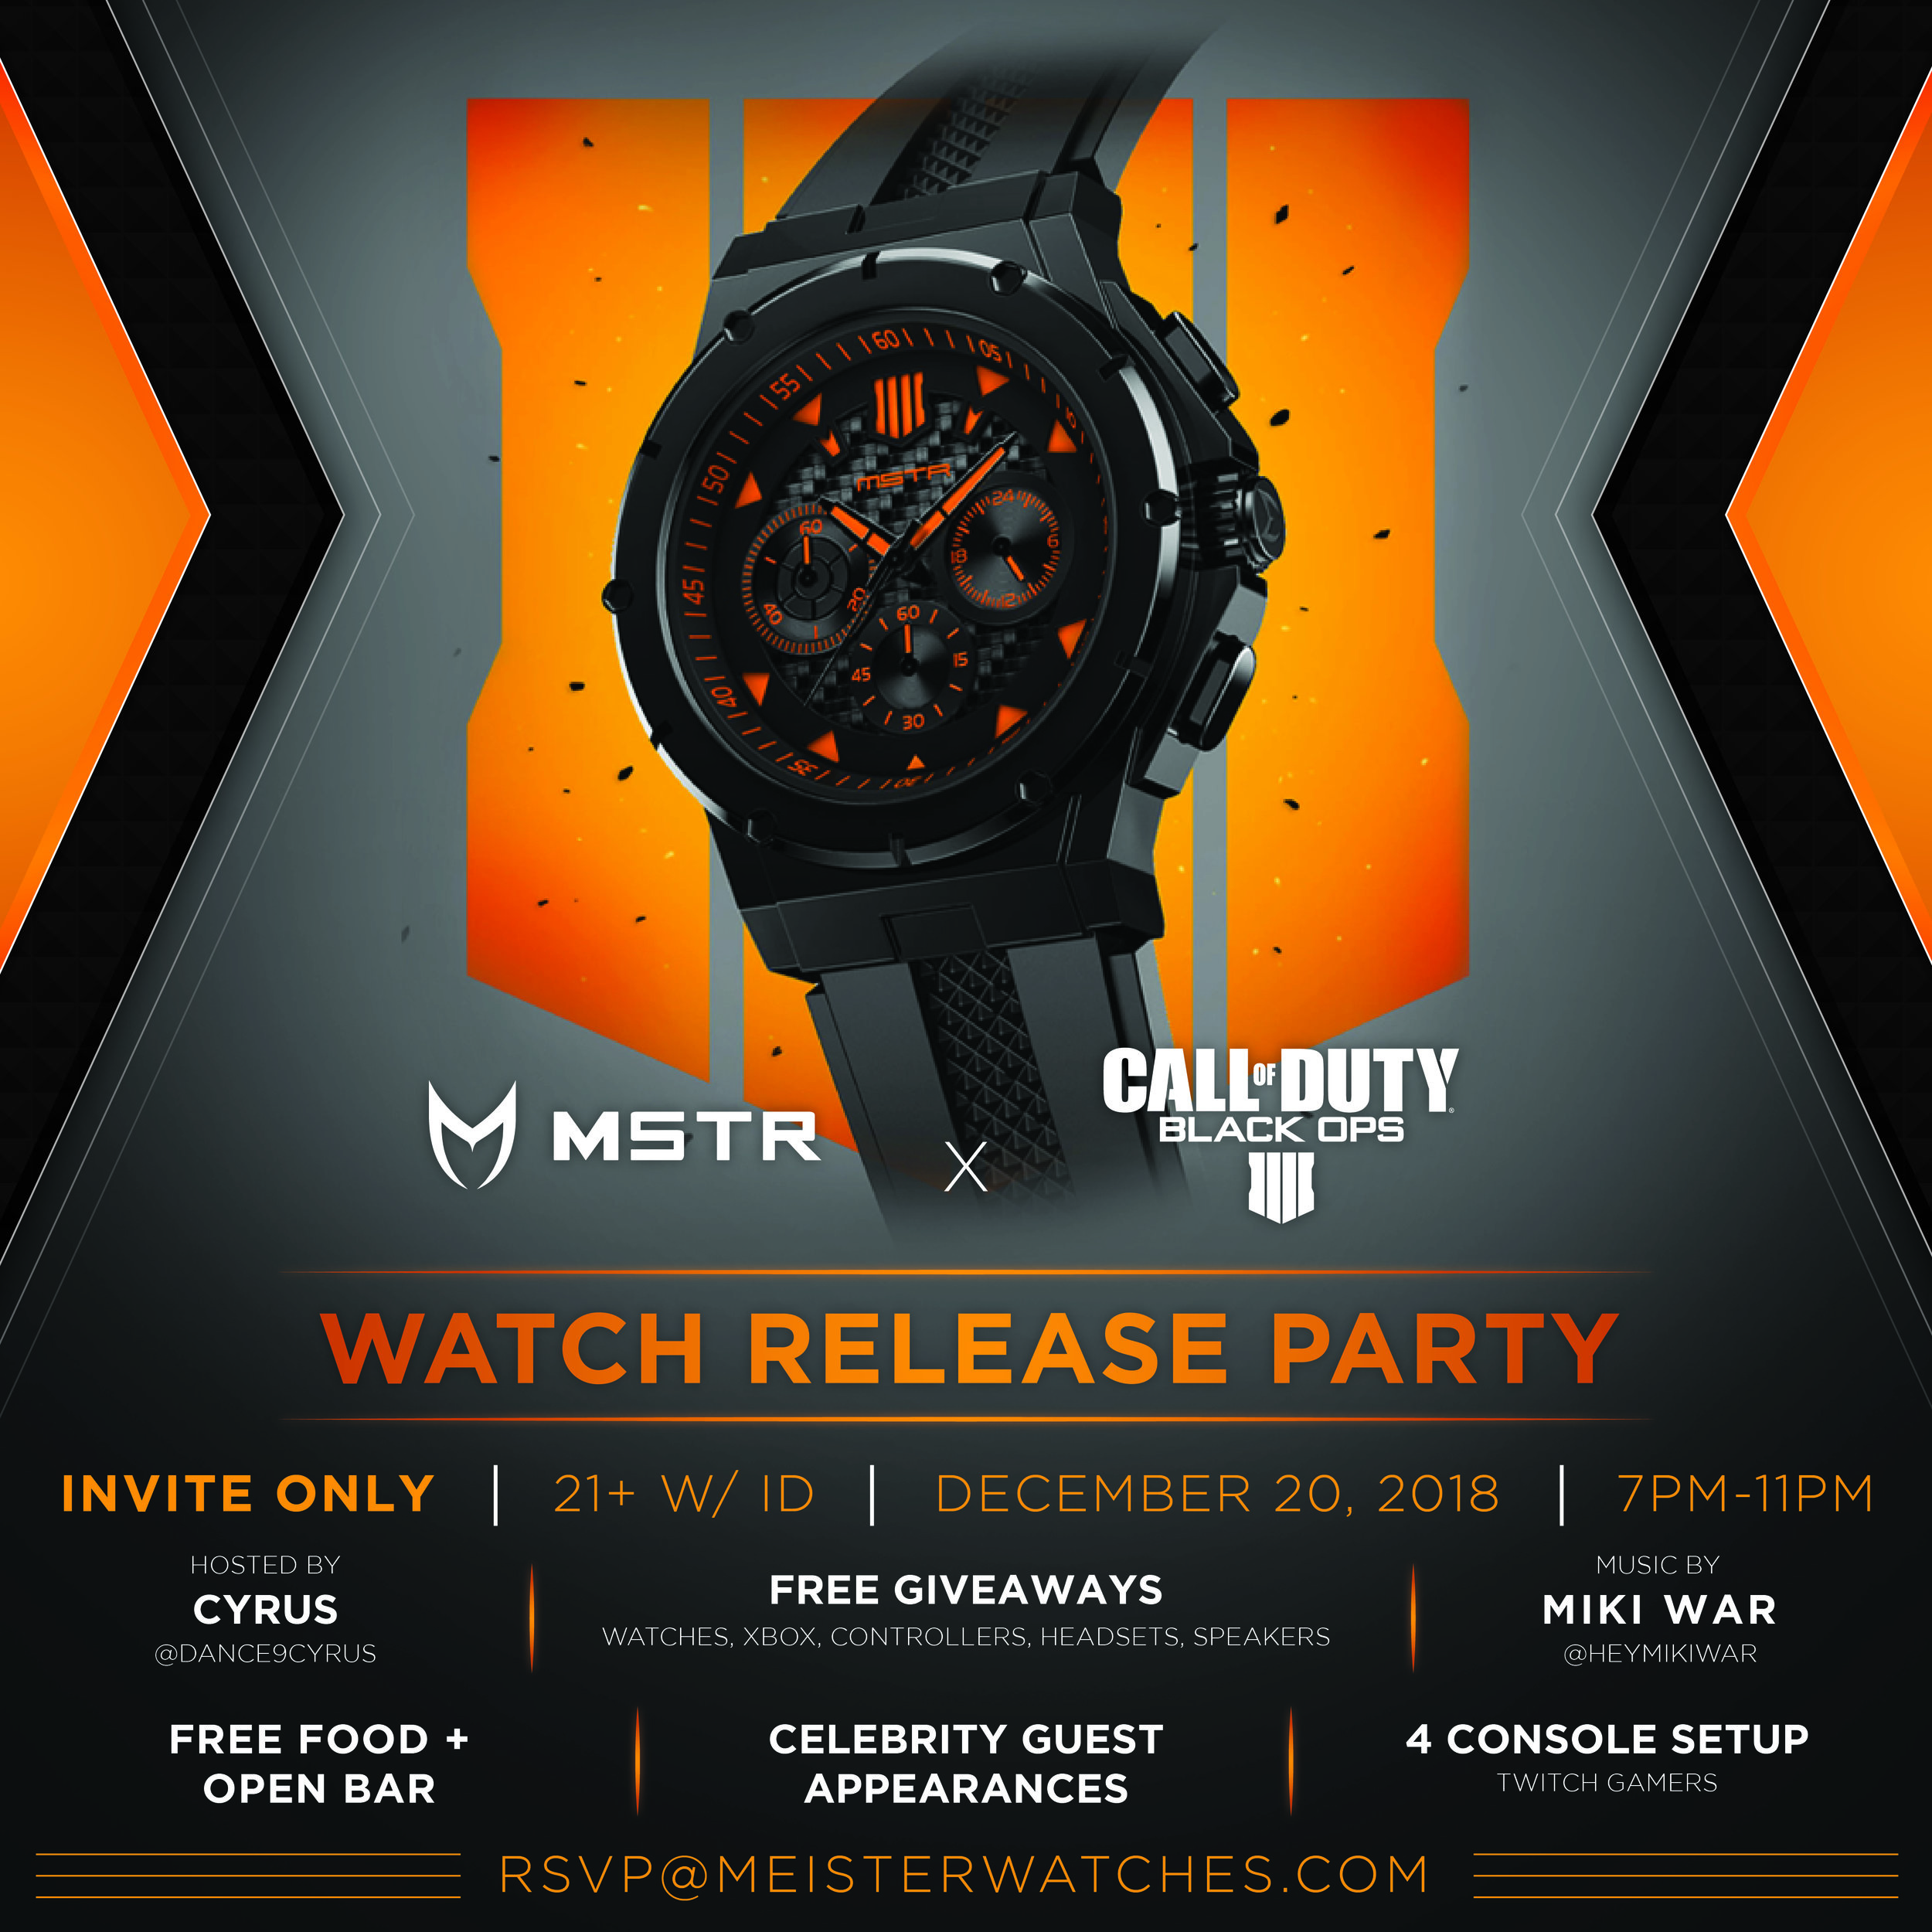 Call of Duty x Meister Pop-Up    December 20, 2018    Meister, Activision, Bose Professional, and Colure and Diamond